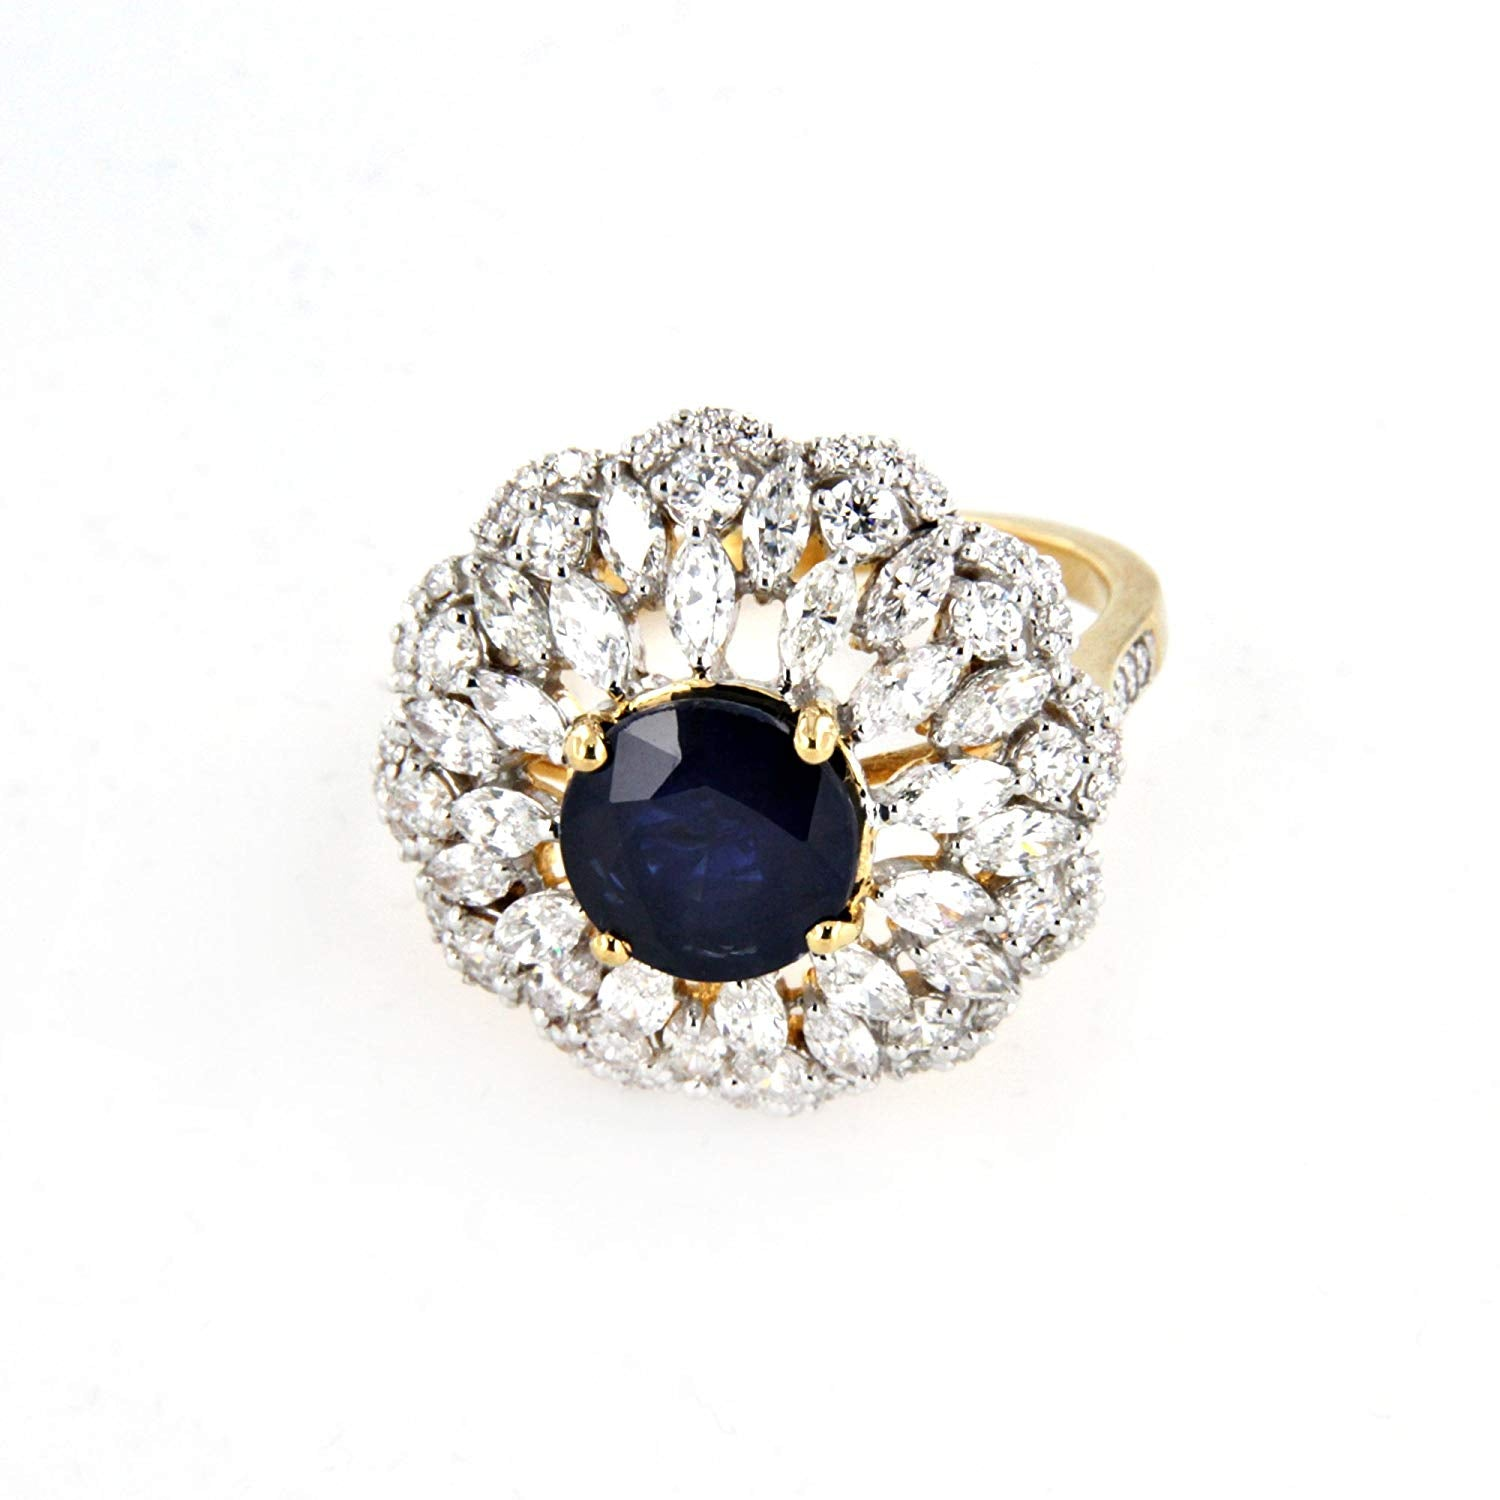 864673c7c2479 atjewels Shiny Solitaire With Accent Ring 14K Yellow Gold On Sterling  Silver With Blue Sapphire MOTHER'S DAY SPECIAL OFFER